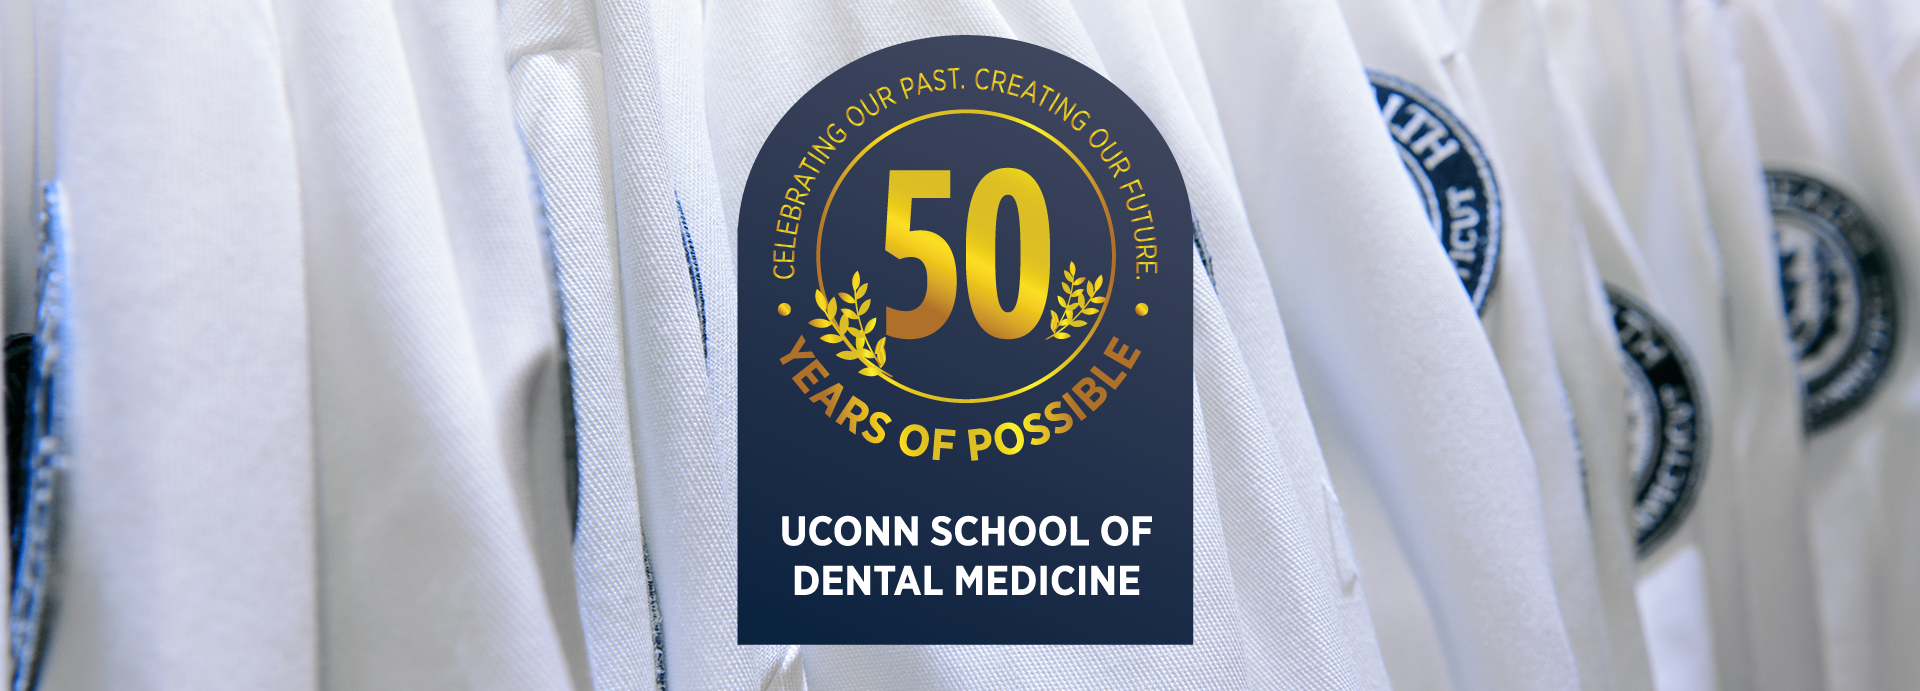 UConn School of Medicine 50 Years of Possible Seal overtop white coats